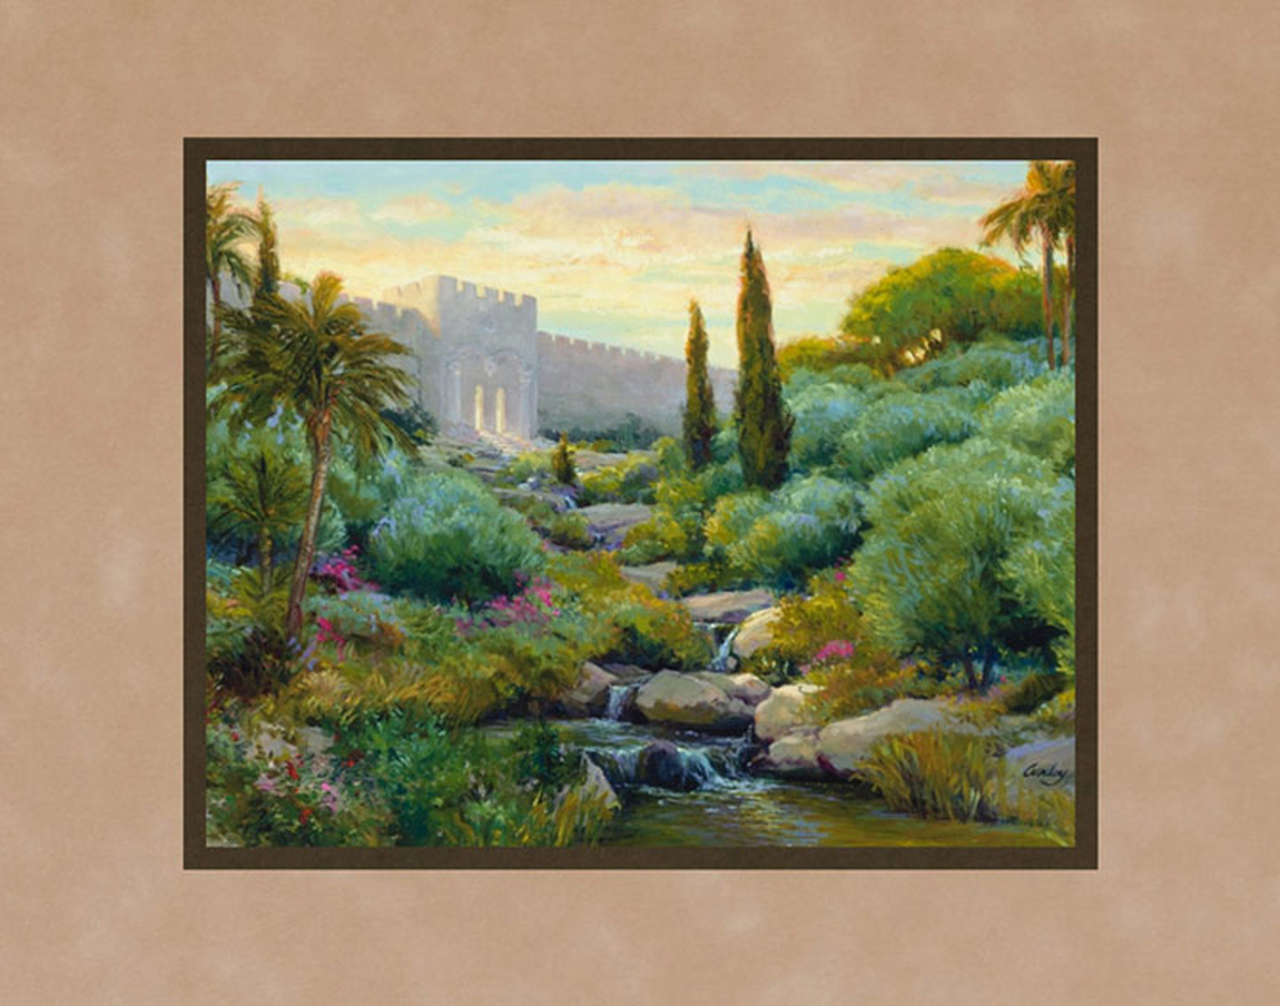 AF -11×14 Print - Beautiful Gate / 11x14 matted/Linda Curley Christensen<BR>美しき門 11×14 マットプリント